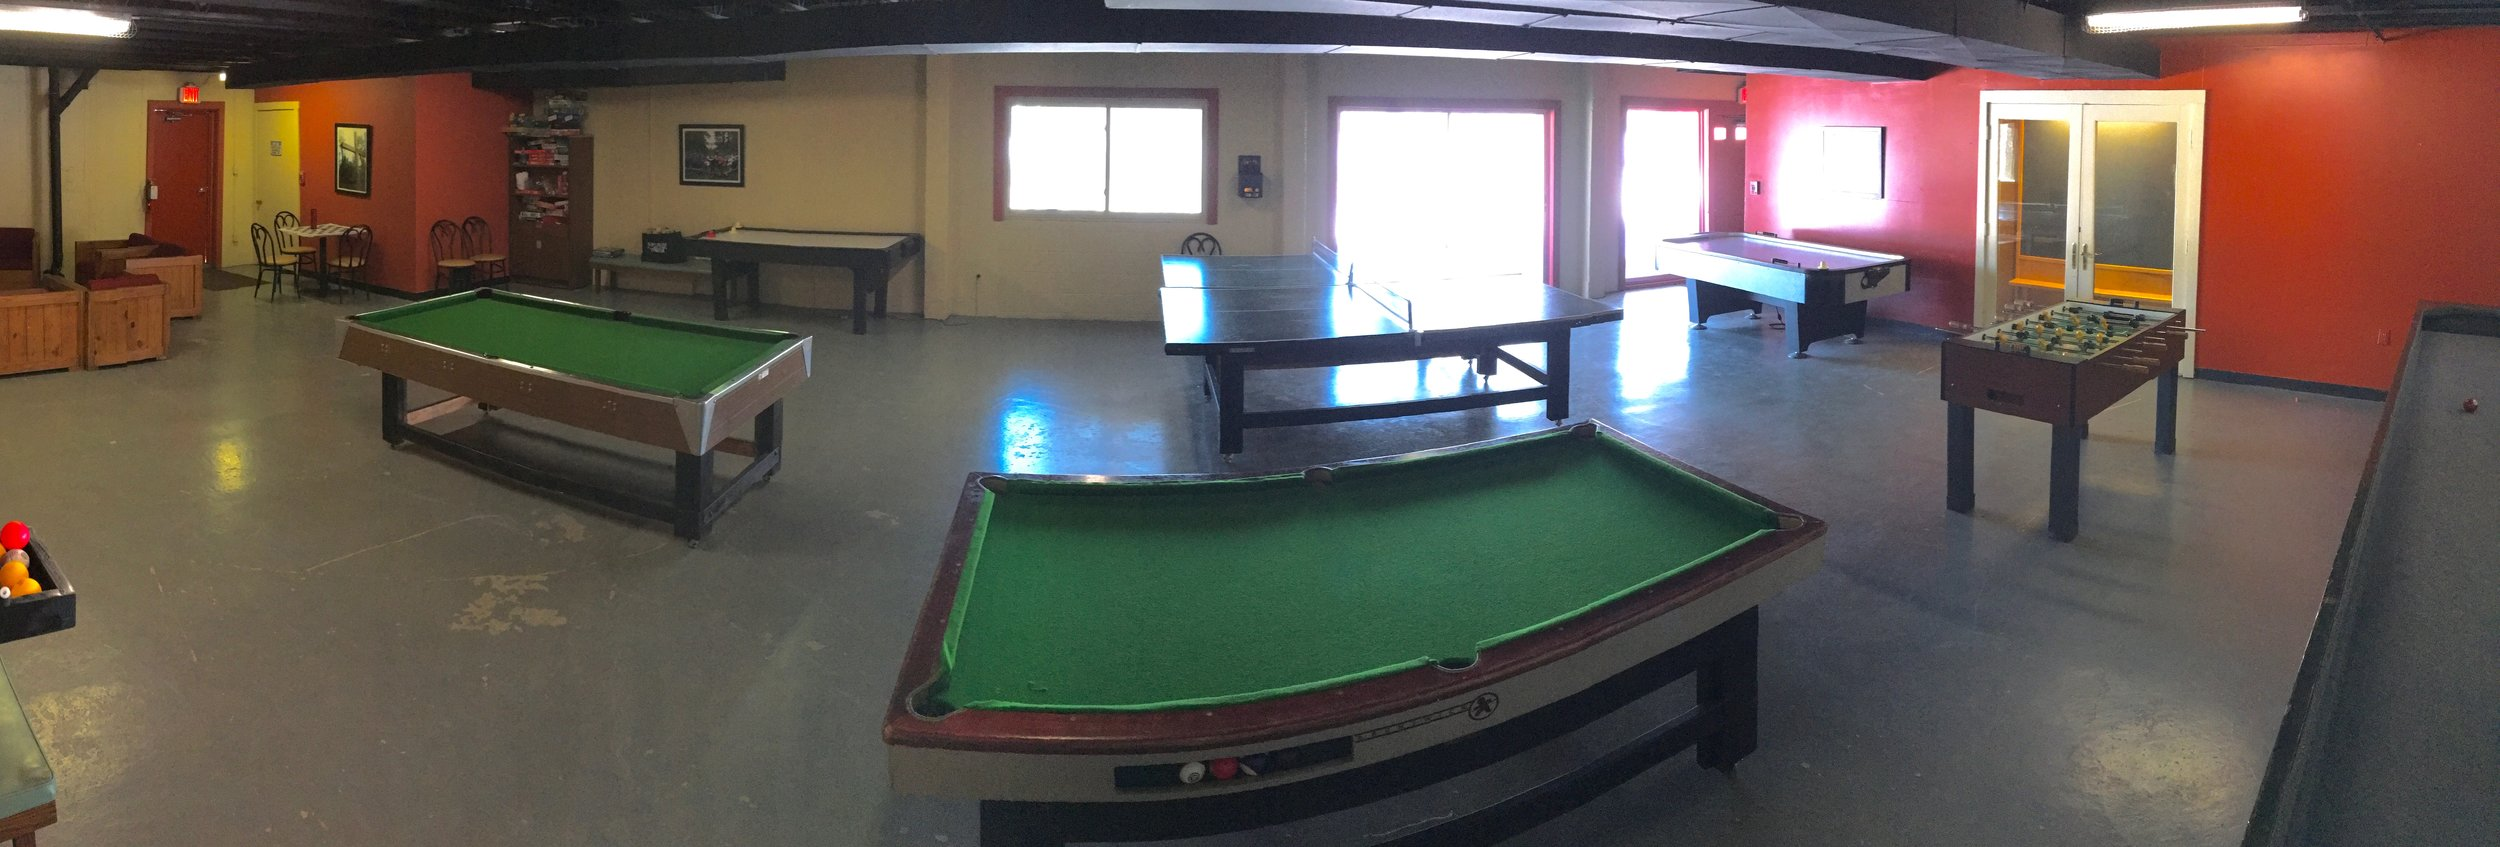 The Game Room in the basement of the Retreat Center.